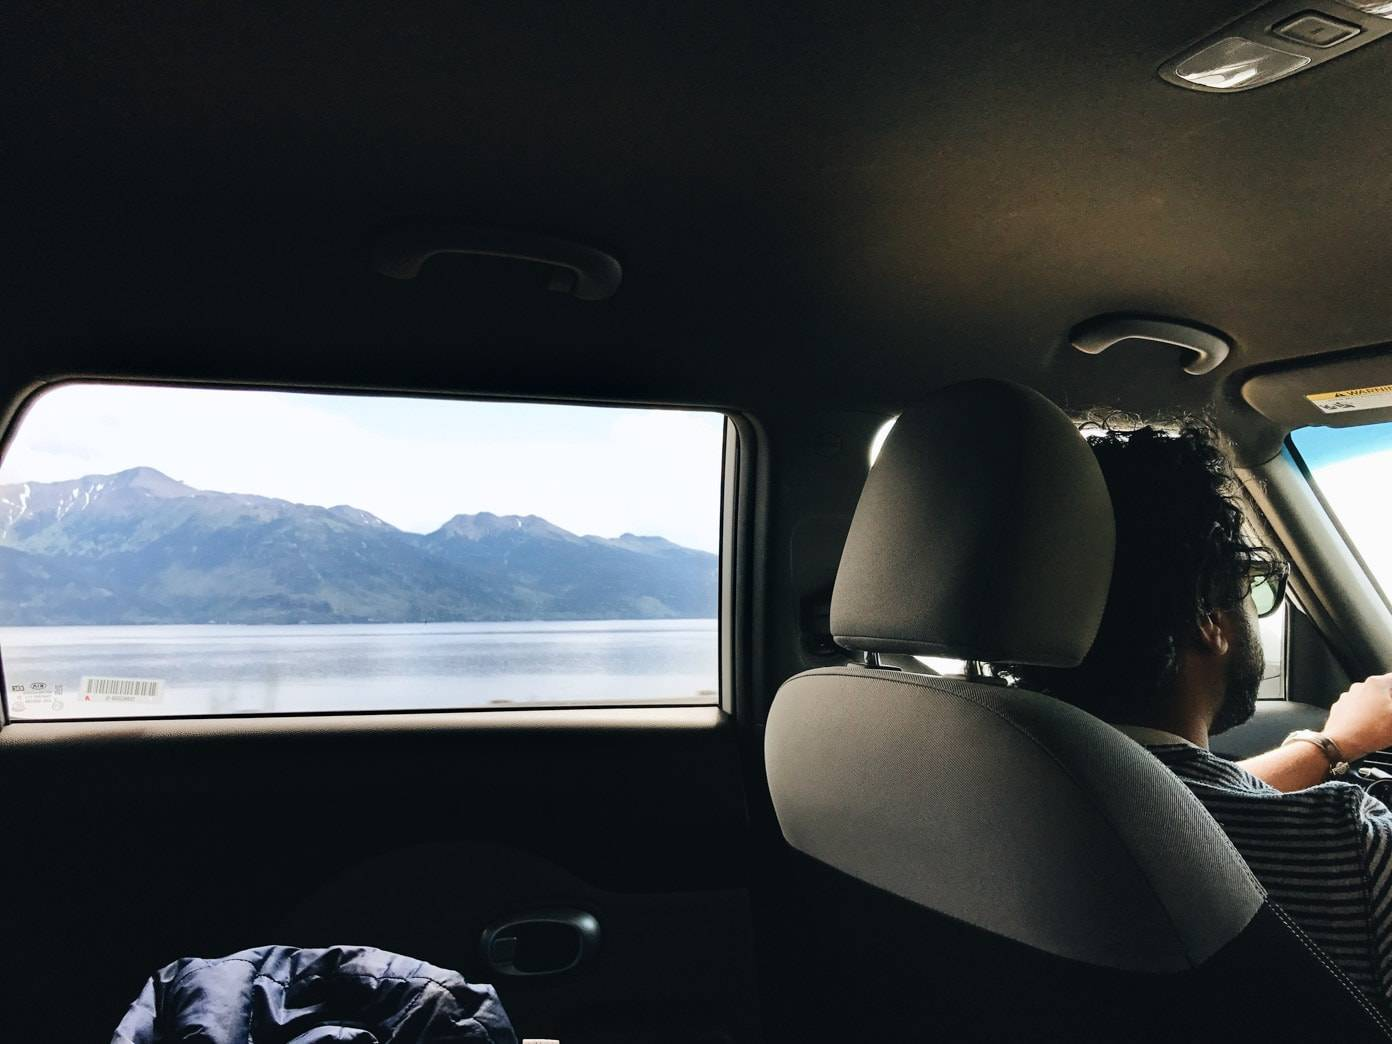 View of mountains out of a car window.